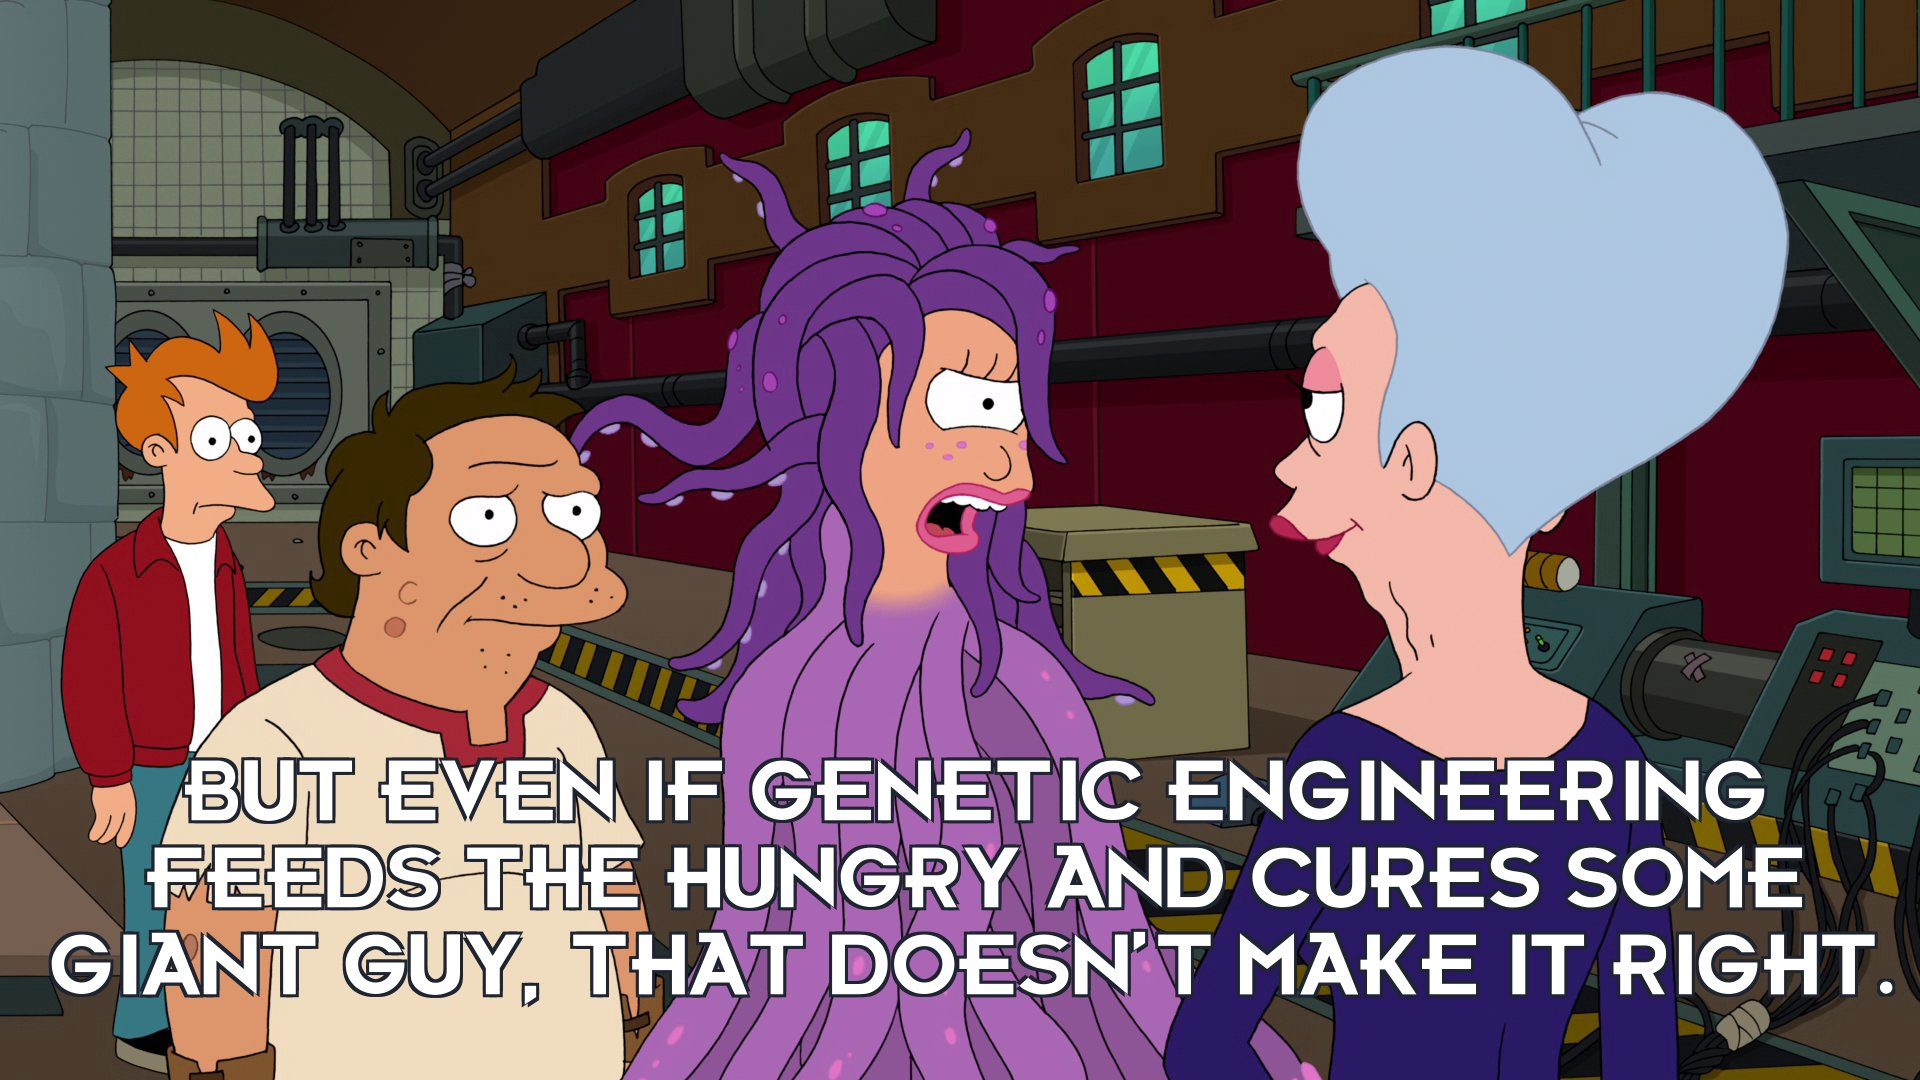 Turanga Leela: But even if genetic engineering feeds the hungry and cures some giant guy, that doesn't make it right.